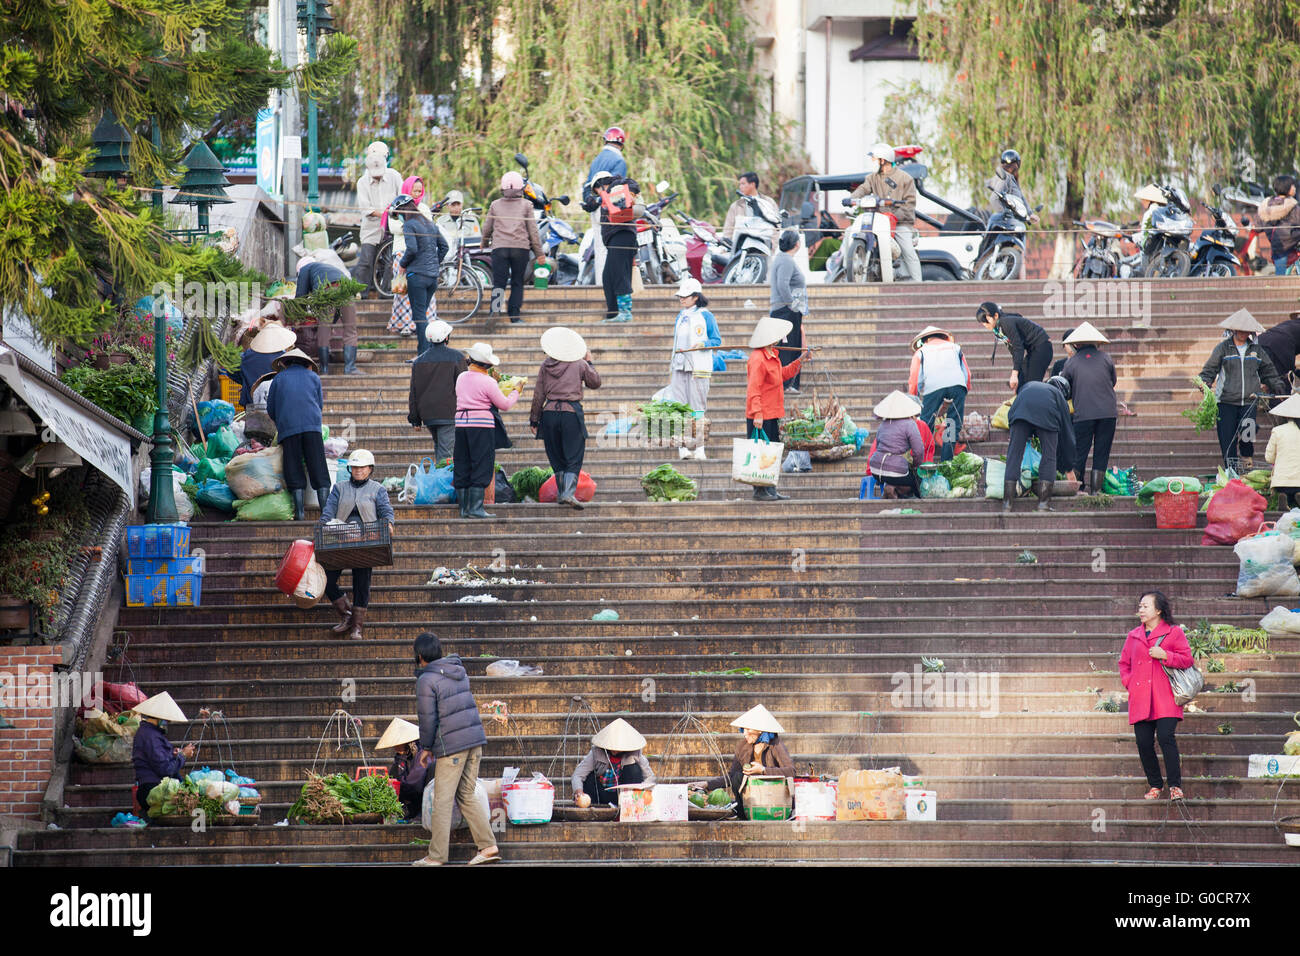 A local farmer and street vendors in sunday market in central city of Da Lat town. - Stock Image